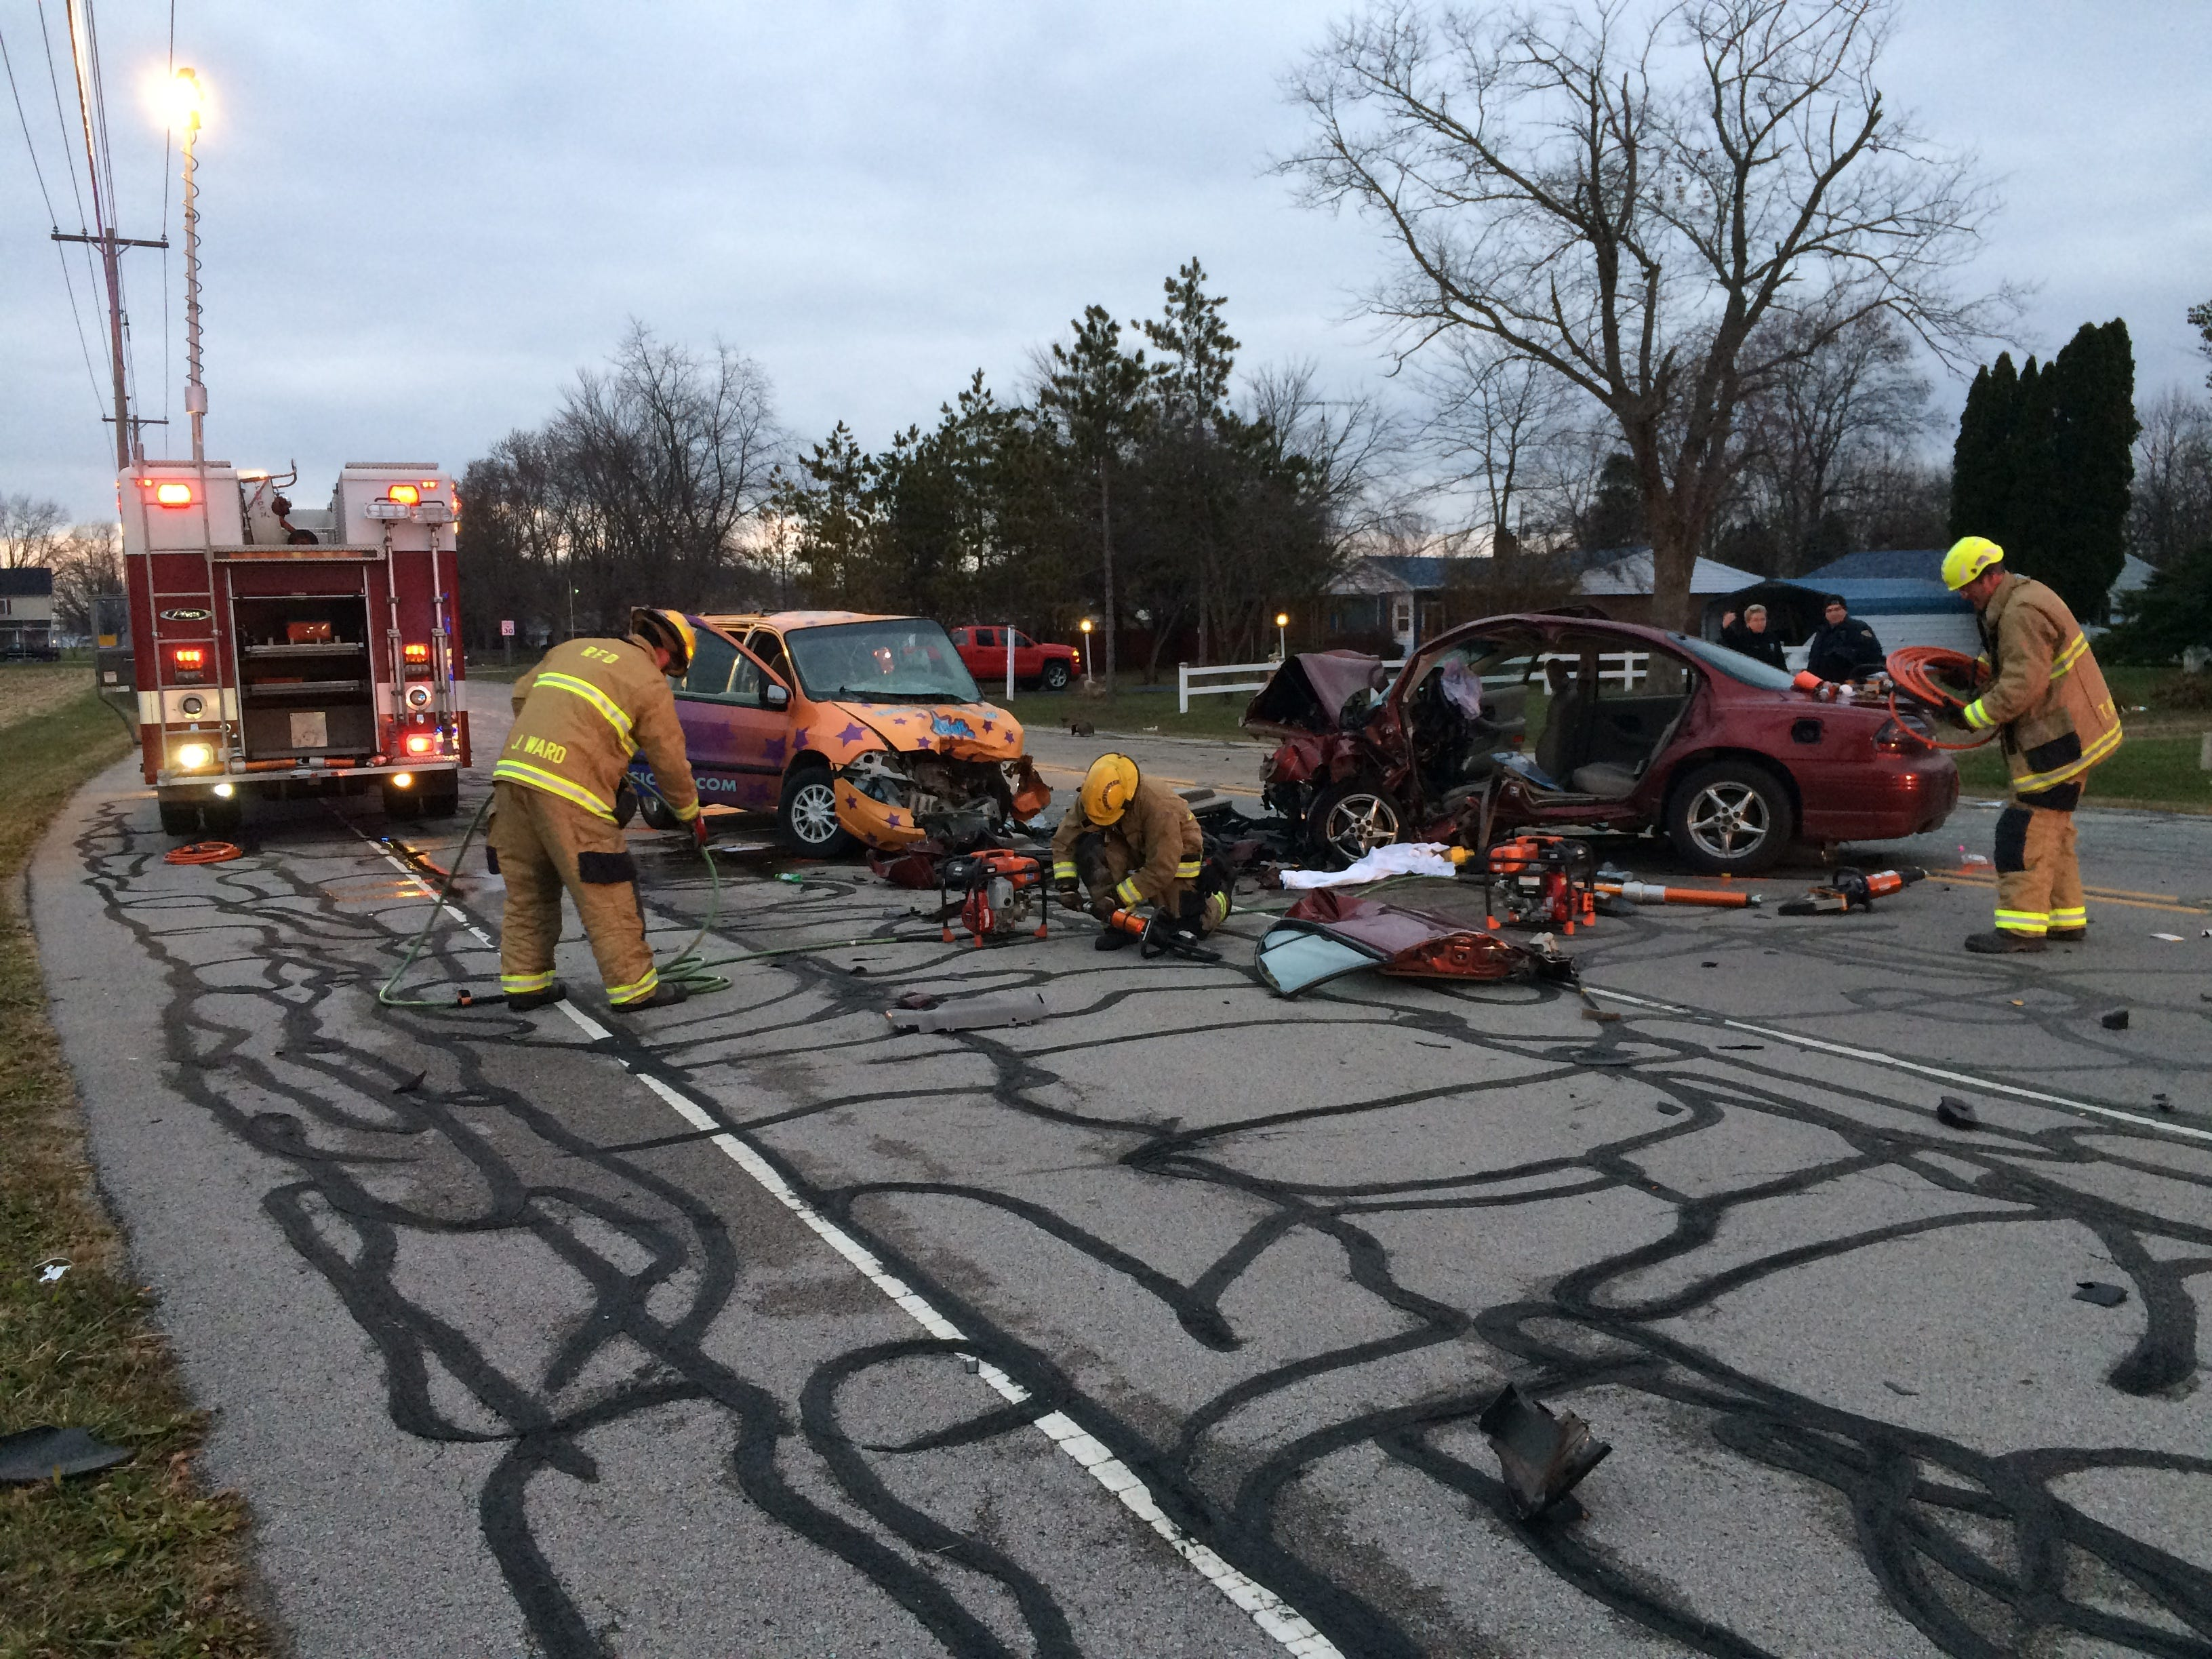 Richmond Fire Department personnel clean up their equipment after extricating a driver from a vehicle Tuesday on Salisbury Road.